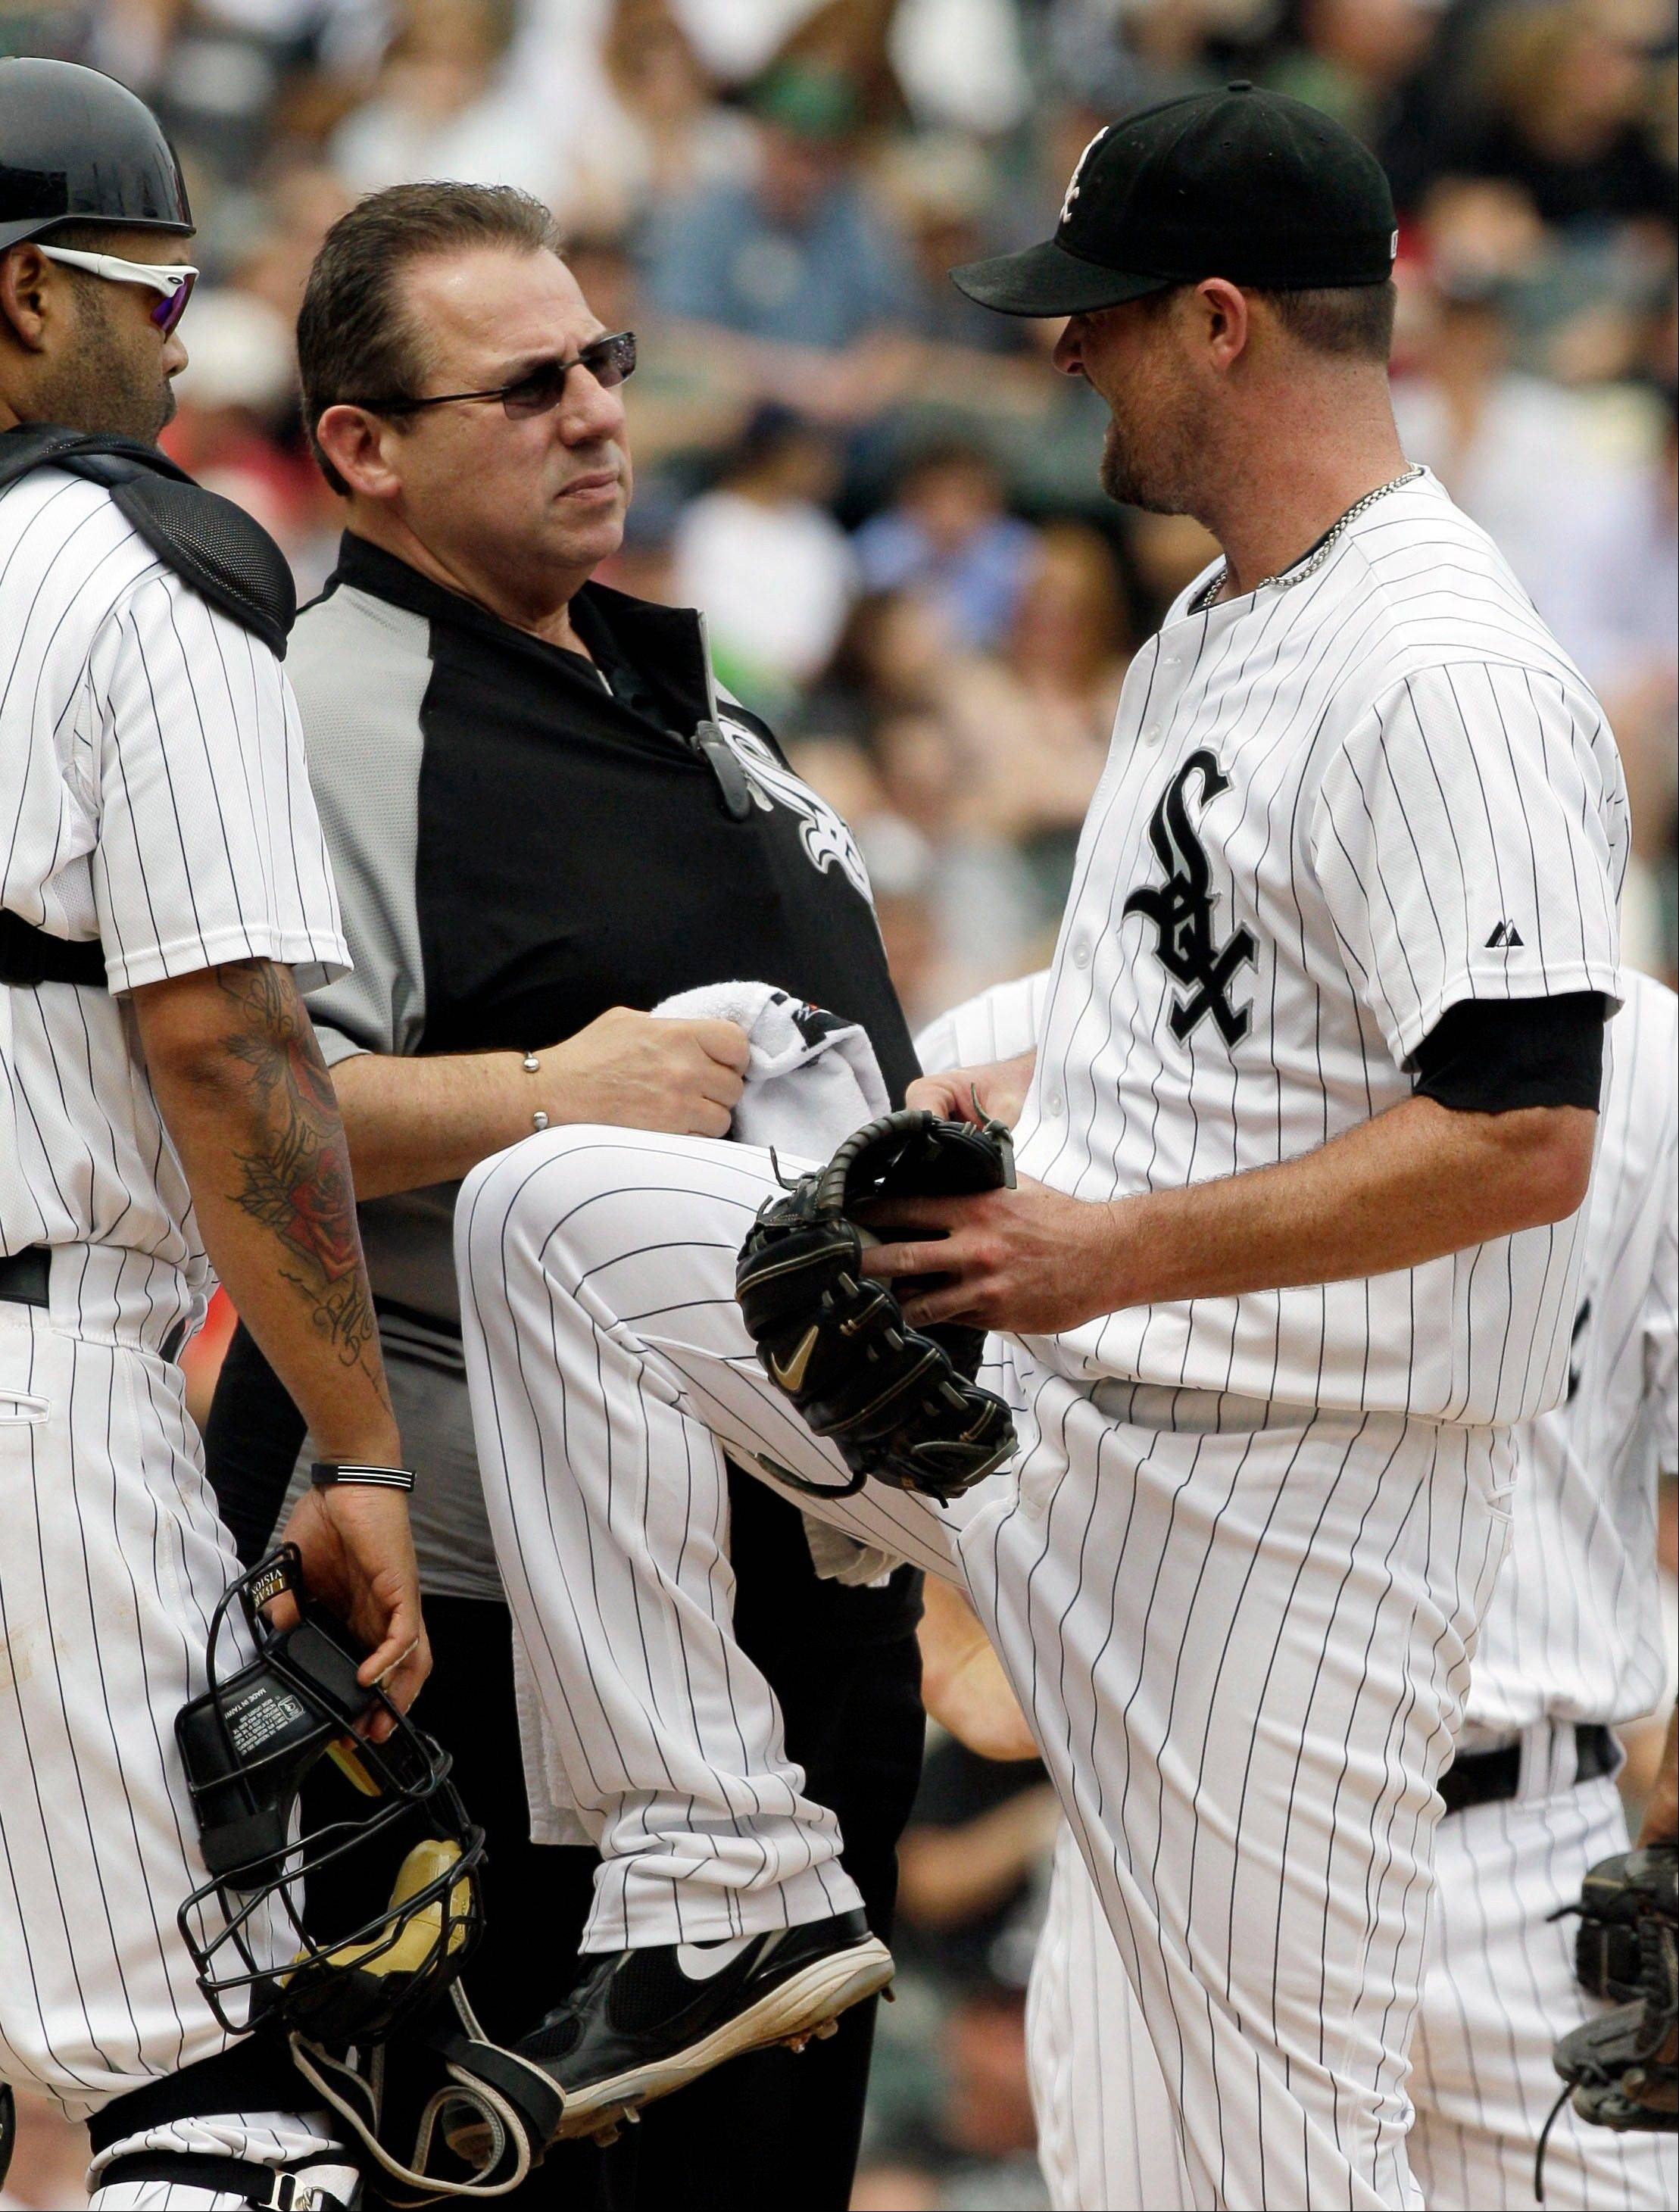 White Sox starter John Danks is checked by a trainer after an injury during the second inning Saturday at U.S. Cellular Field. Danks strained his oblique with two outs in the inning.